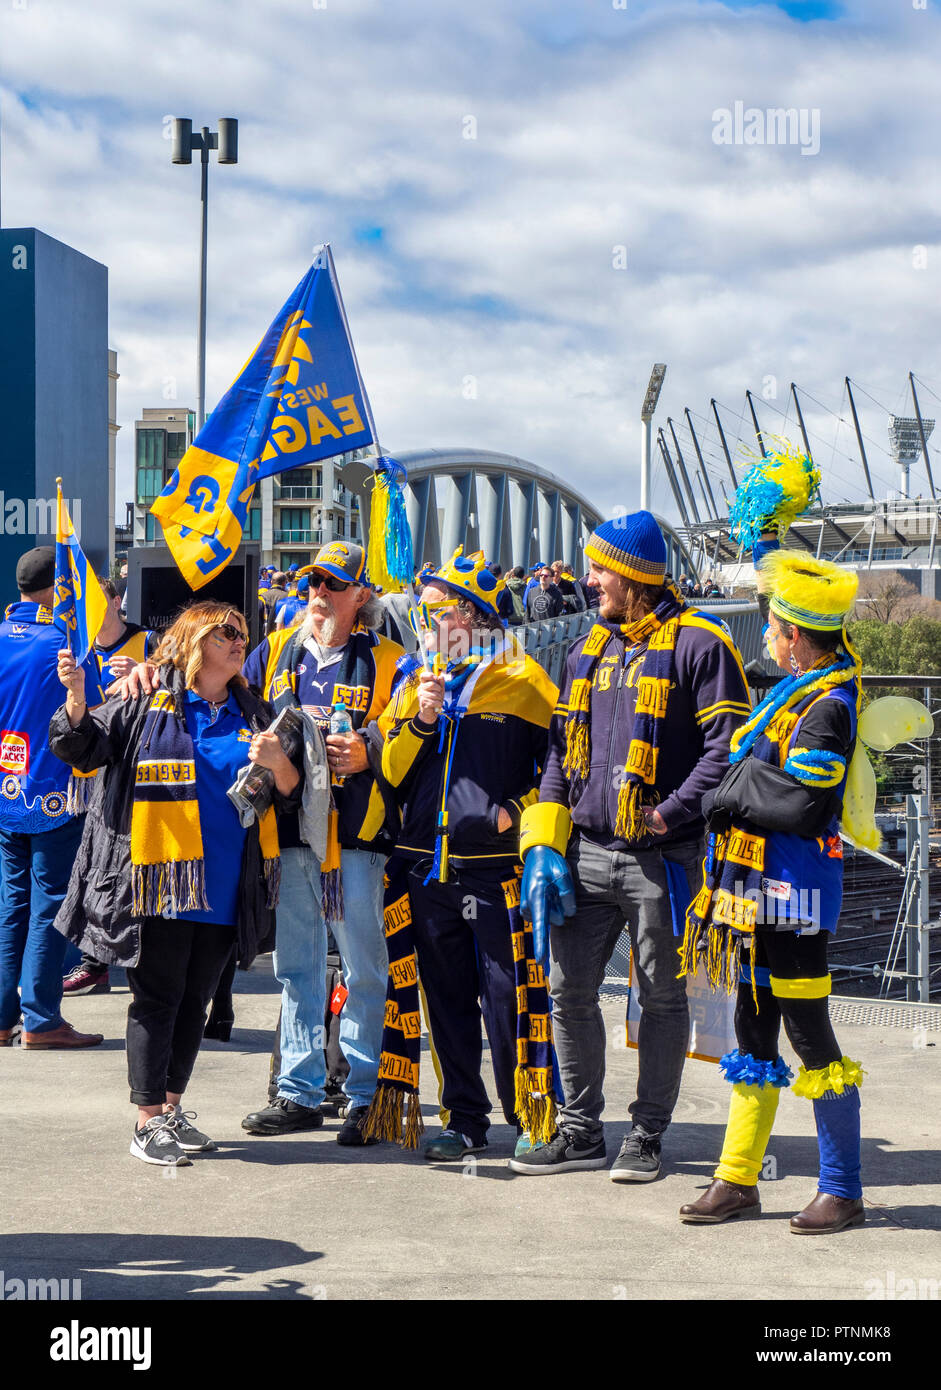 West Coast Eagles Football Club fans and supporters marching to the 2018 AFL Grand Final at the MCG, Melbourne Victoria Australia. Stock Photo